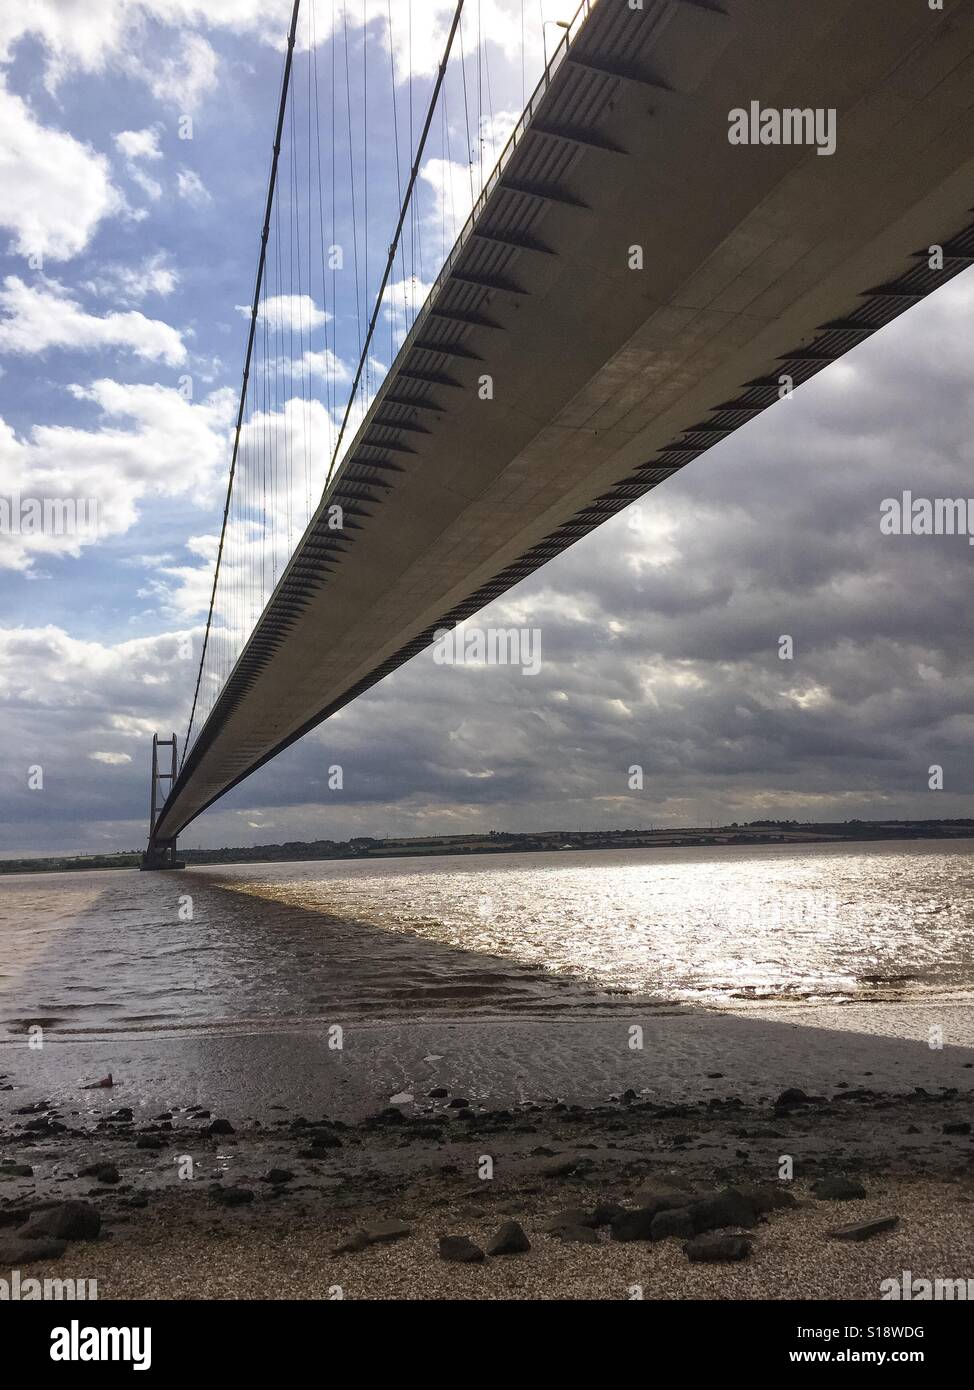 The Humber Suspension Bridge Crossing Between Lincolnshire and East Yorkshire England United Kingdom U.K. - Stock Image